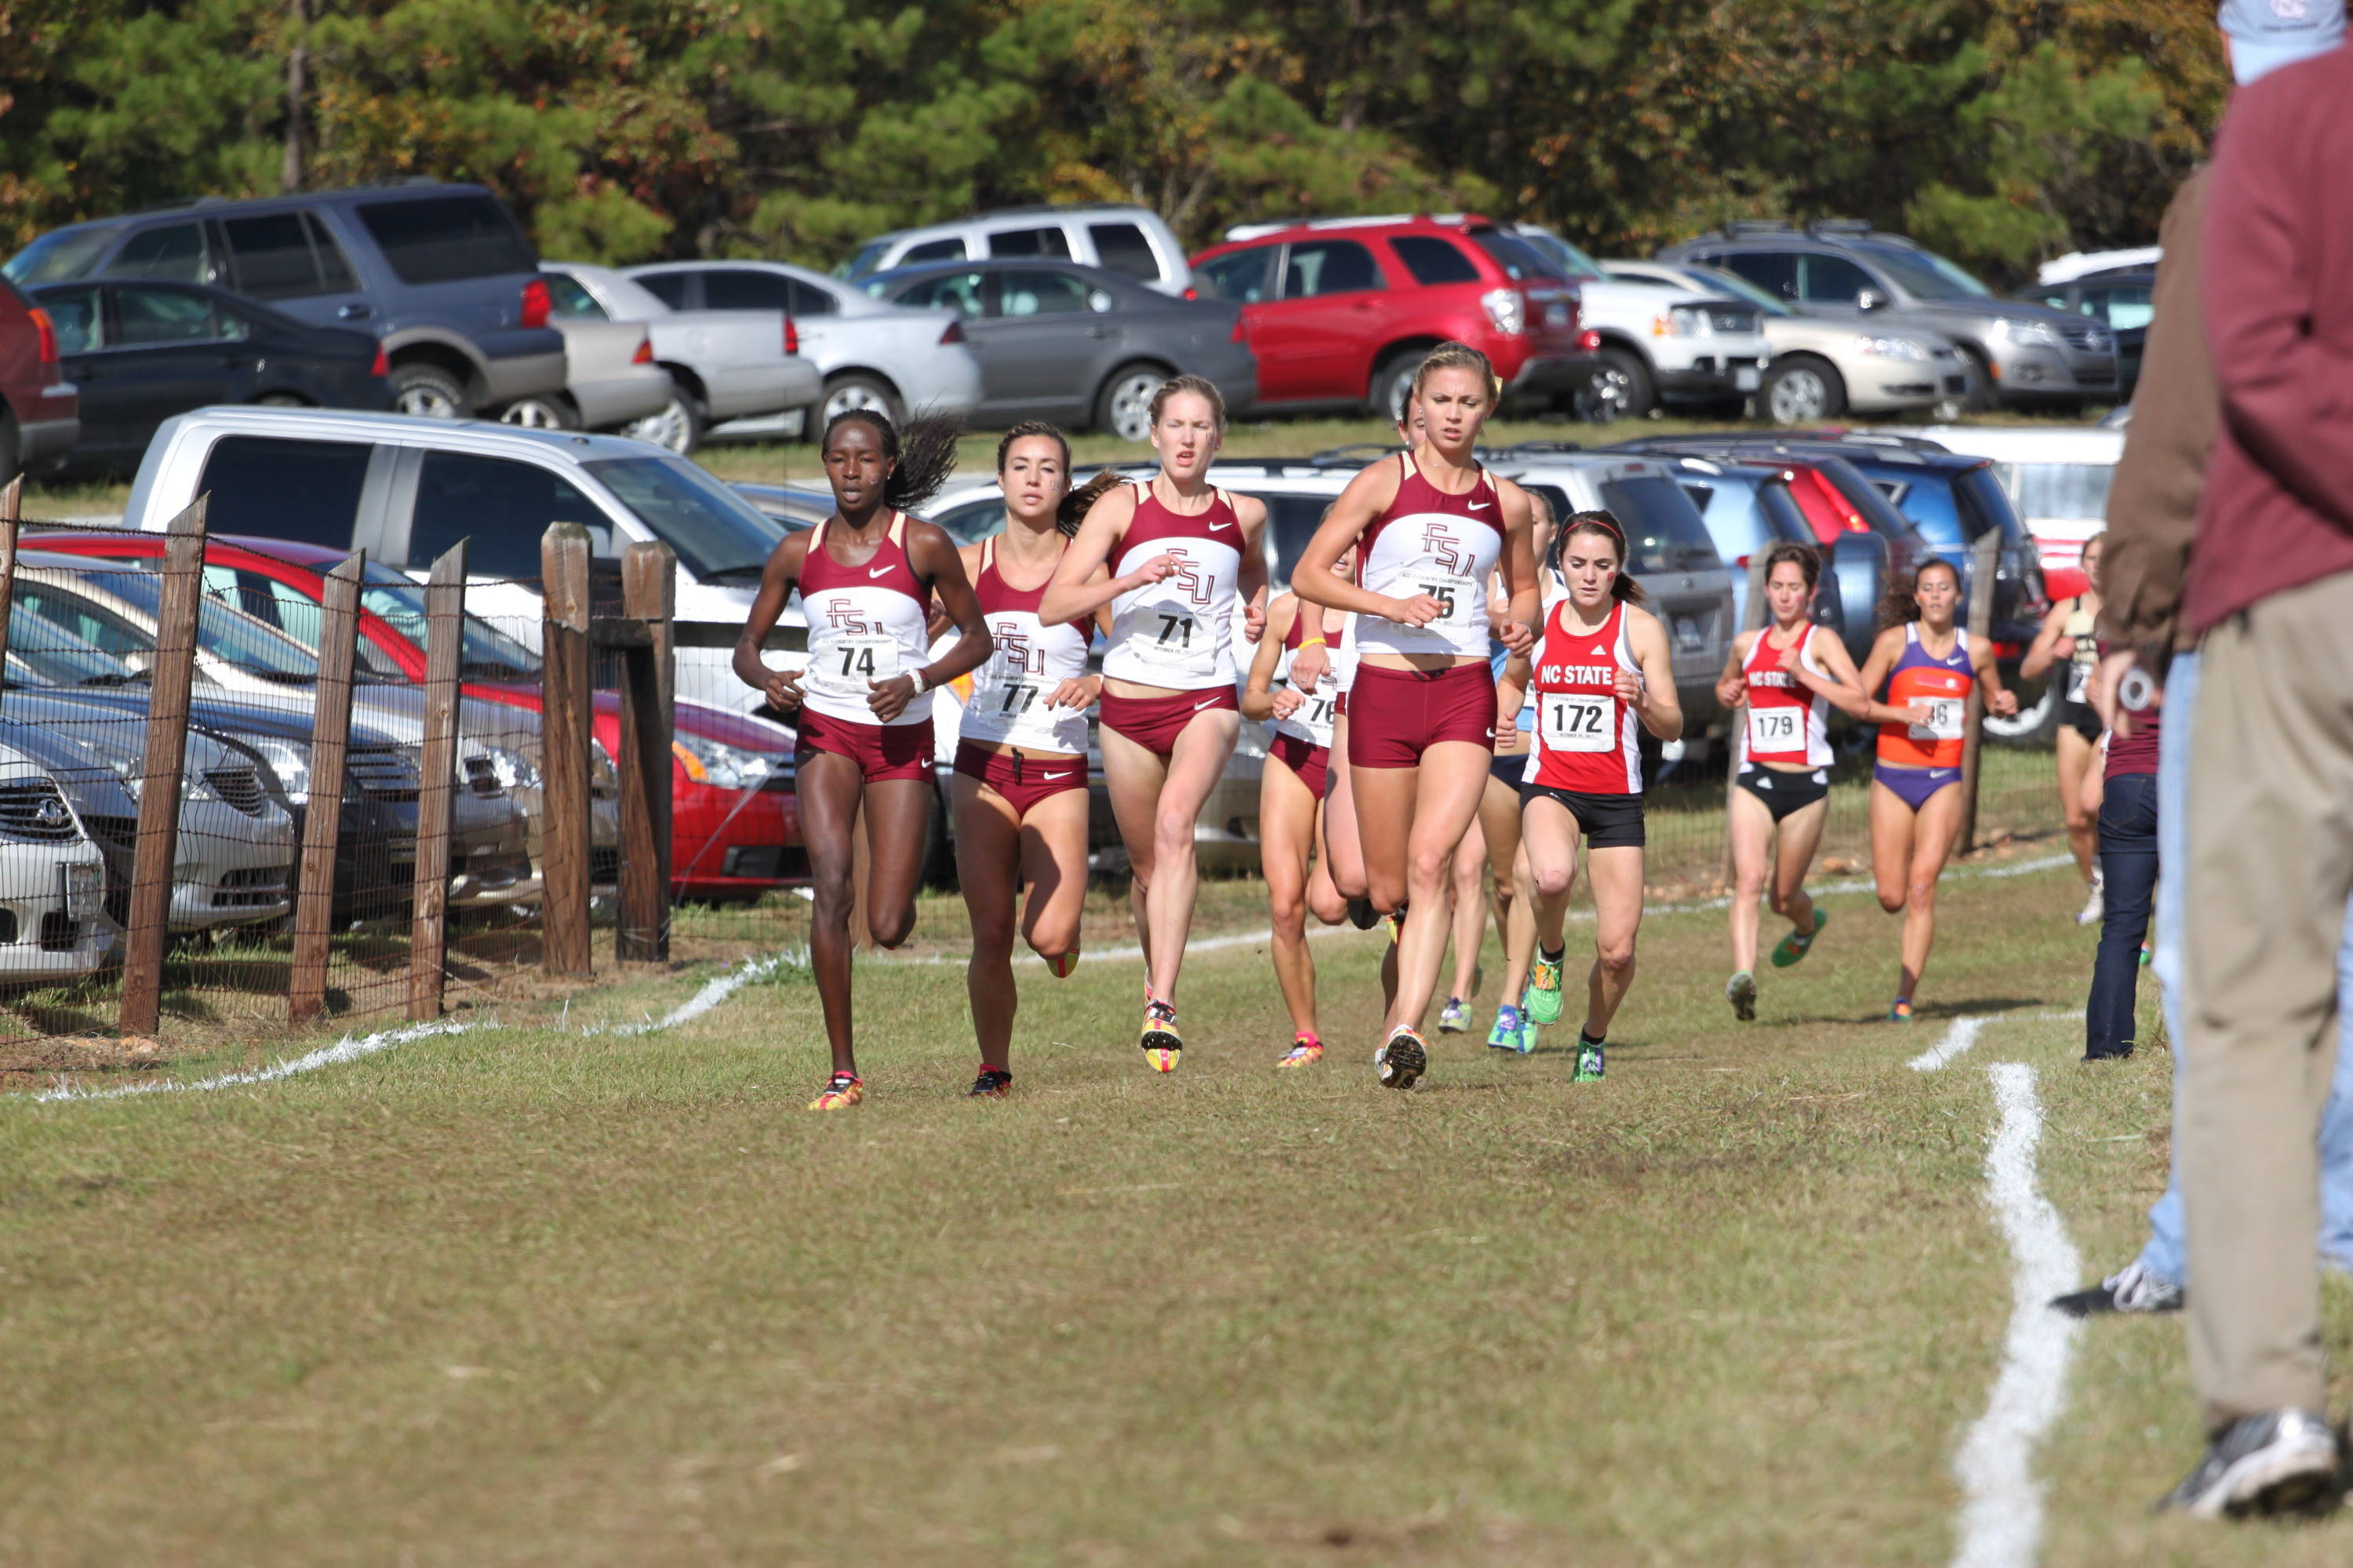 FSU's chase pack, from left to right, of Violah Lagat, Kayleigh Tyerman, Hannah Brooks, Colleen Quigley (obstructed) and Jessica Parry, sealed the Seminoles' fourth consecutive ACC title.